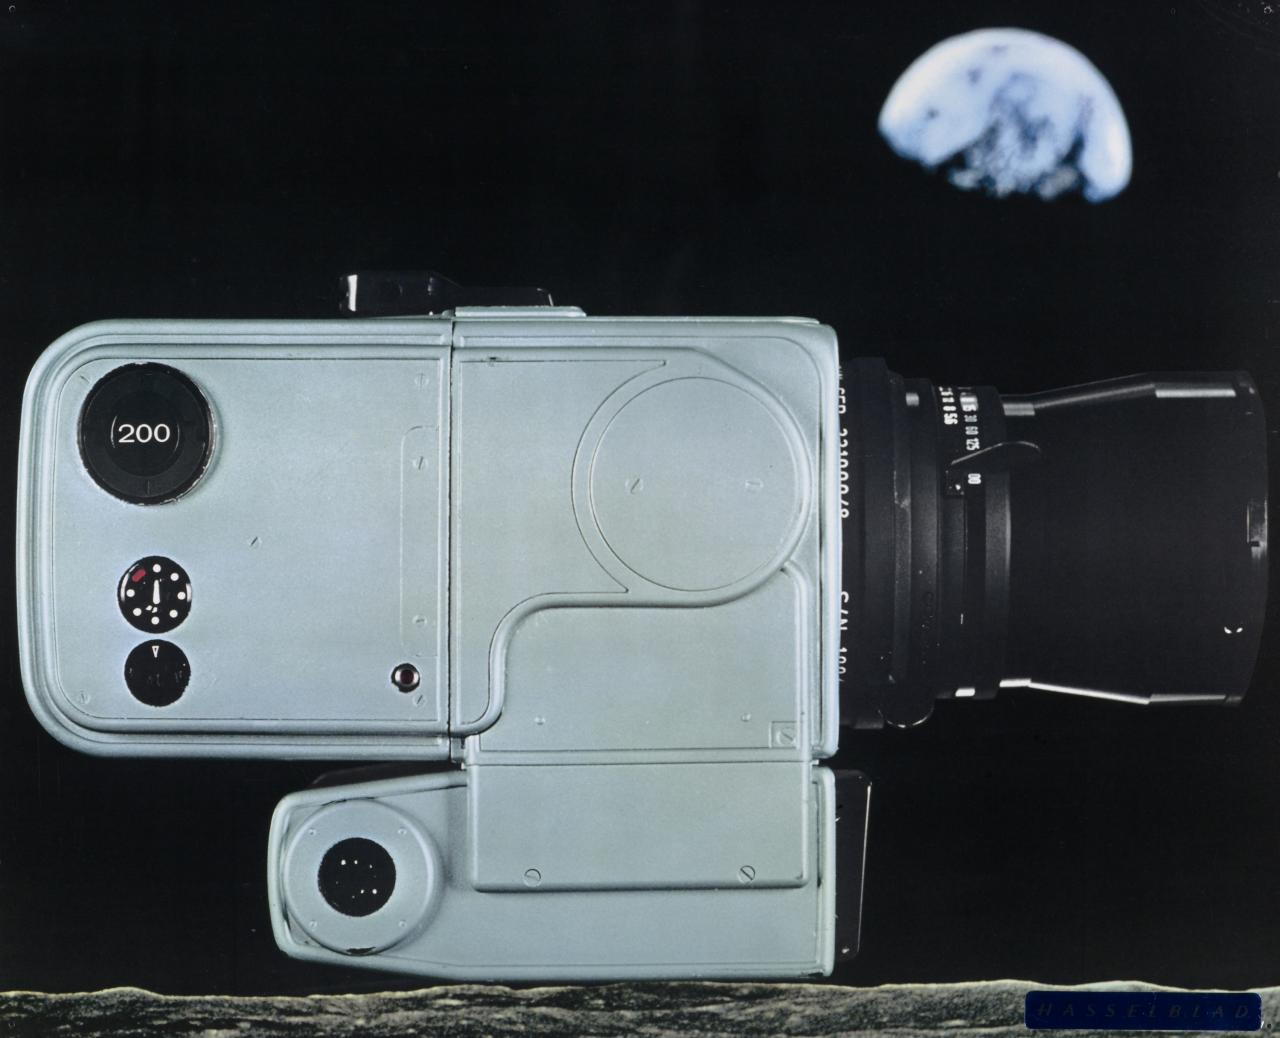 Hasselblad camera as used, and left, on the moon